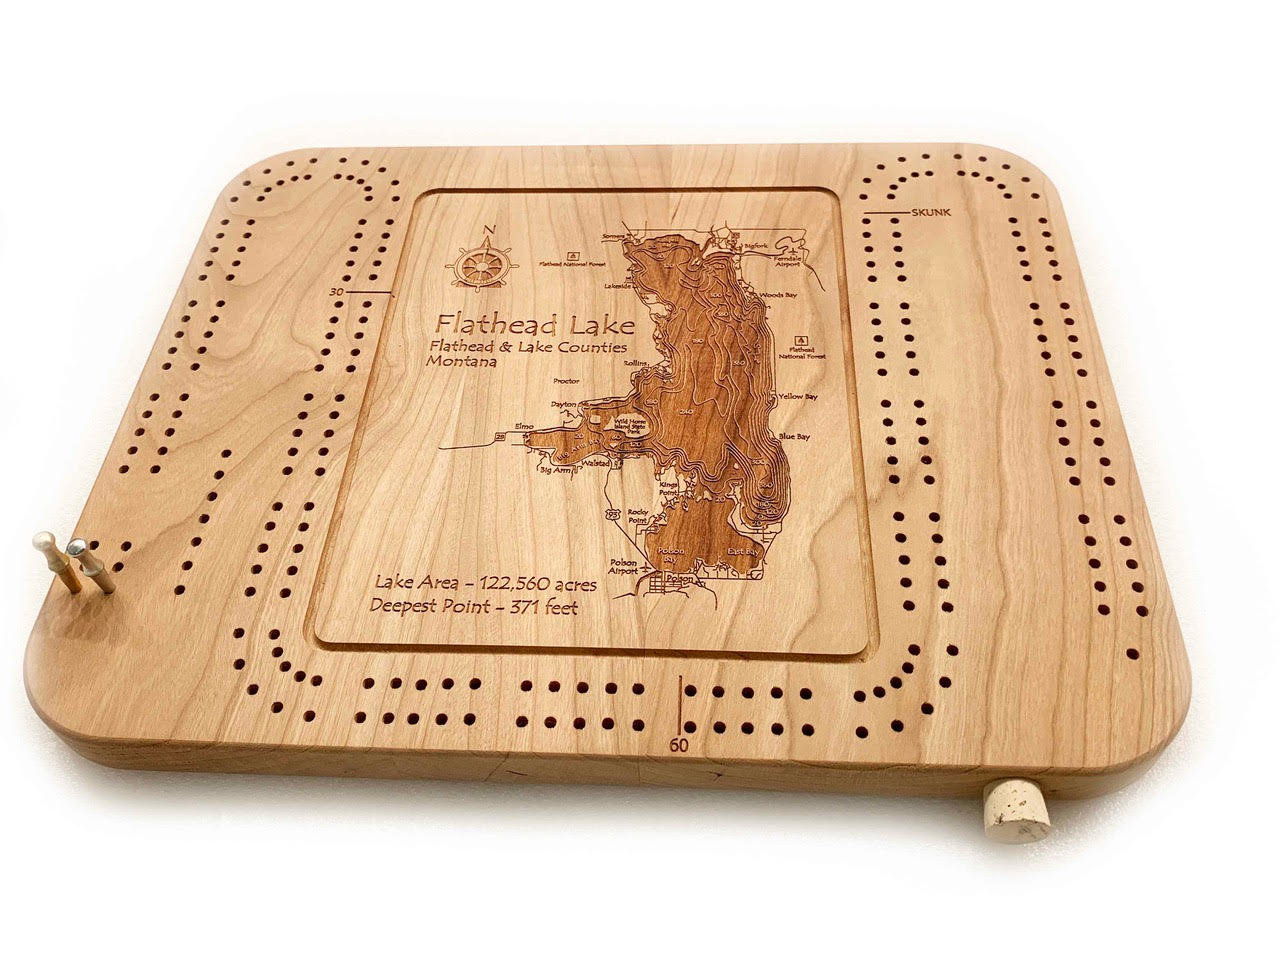 Etched Cribbage Board - Flathead